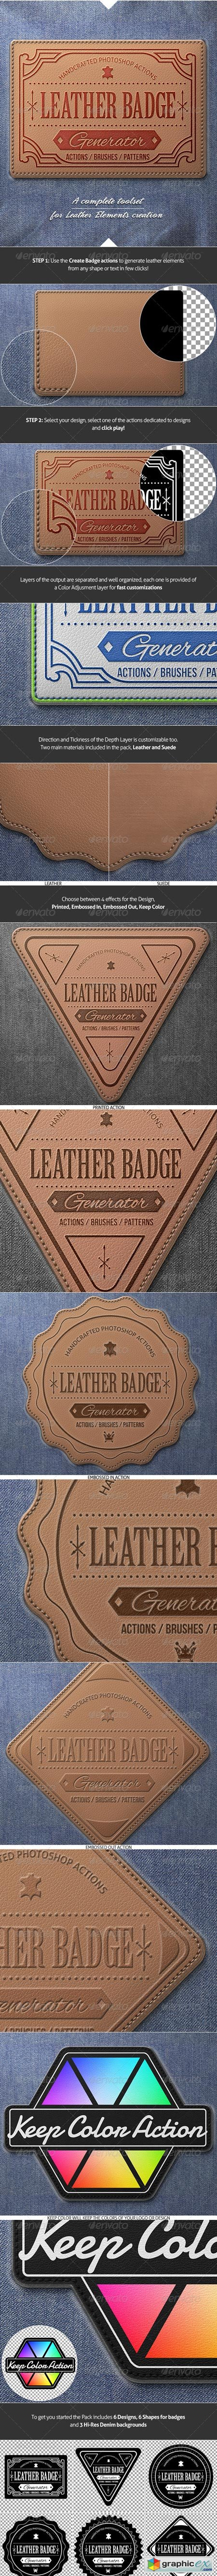 Leather Badge Generator - Photoshop Actions 8376002